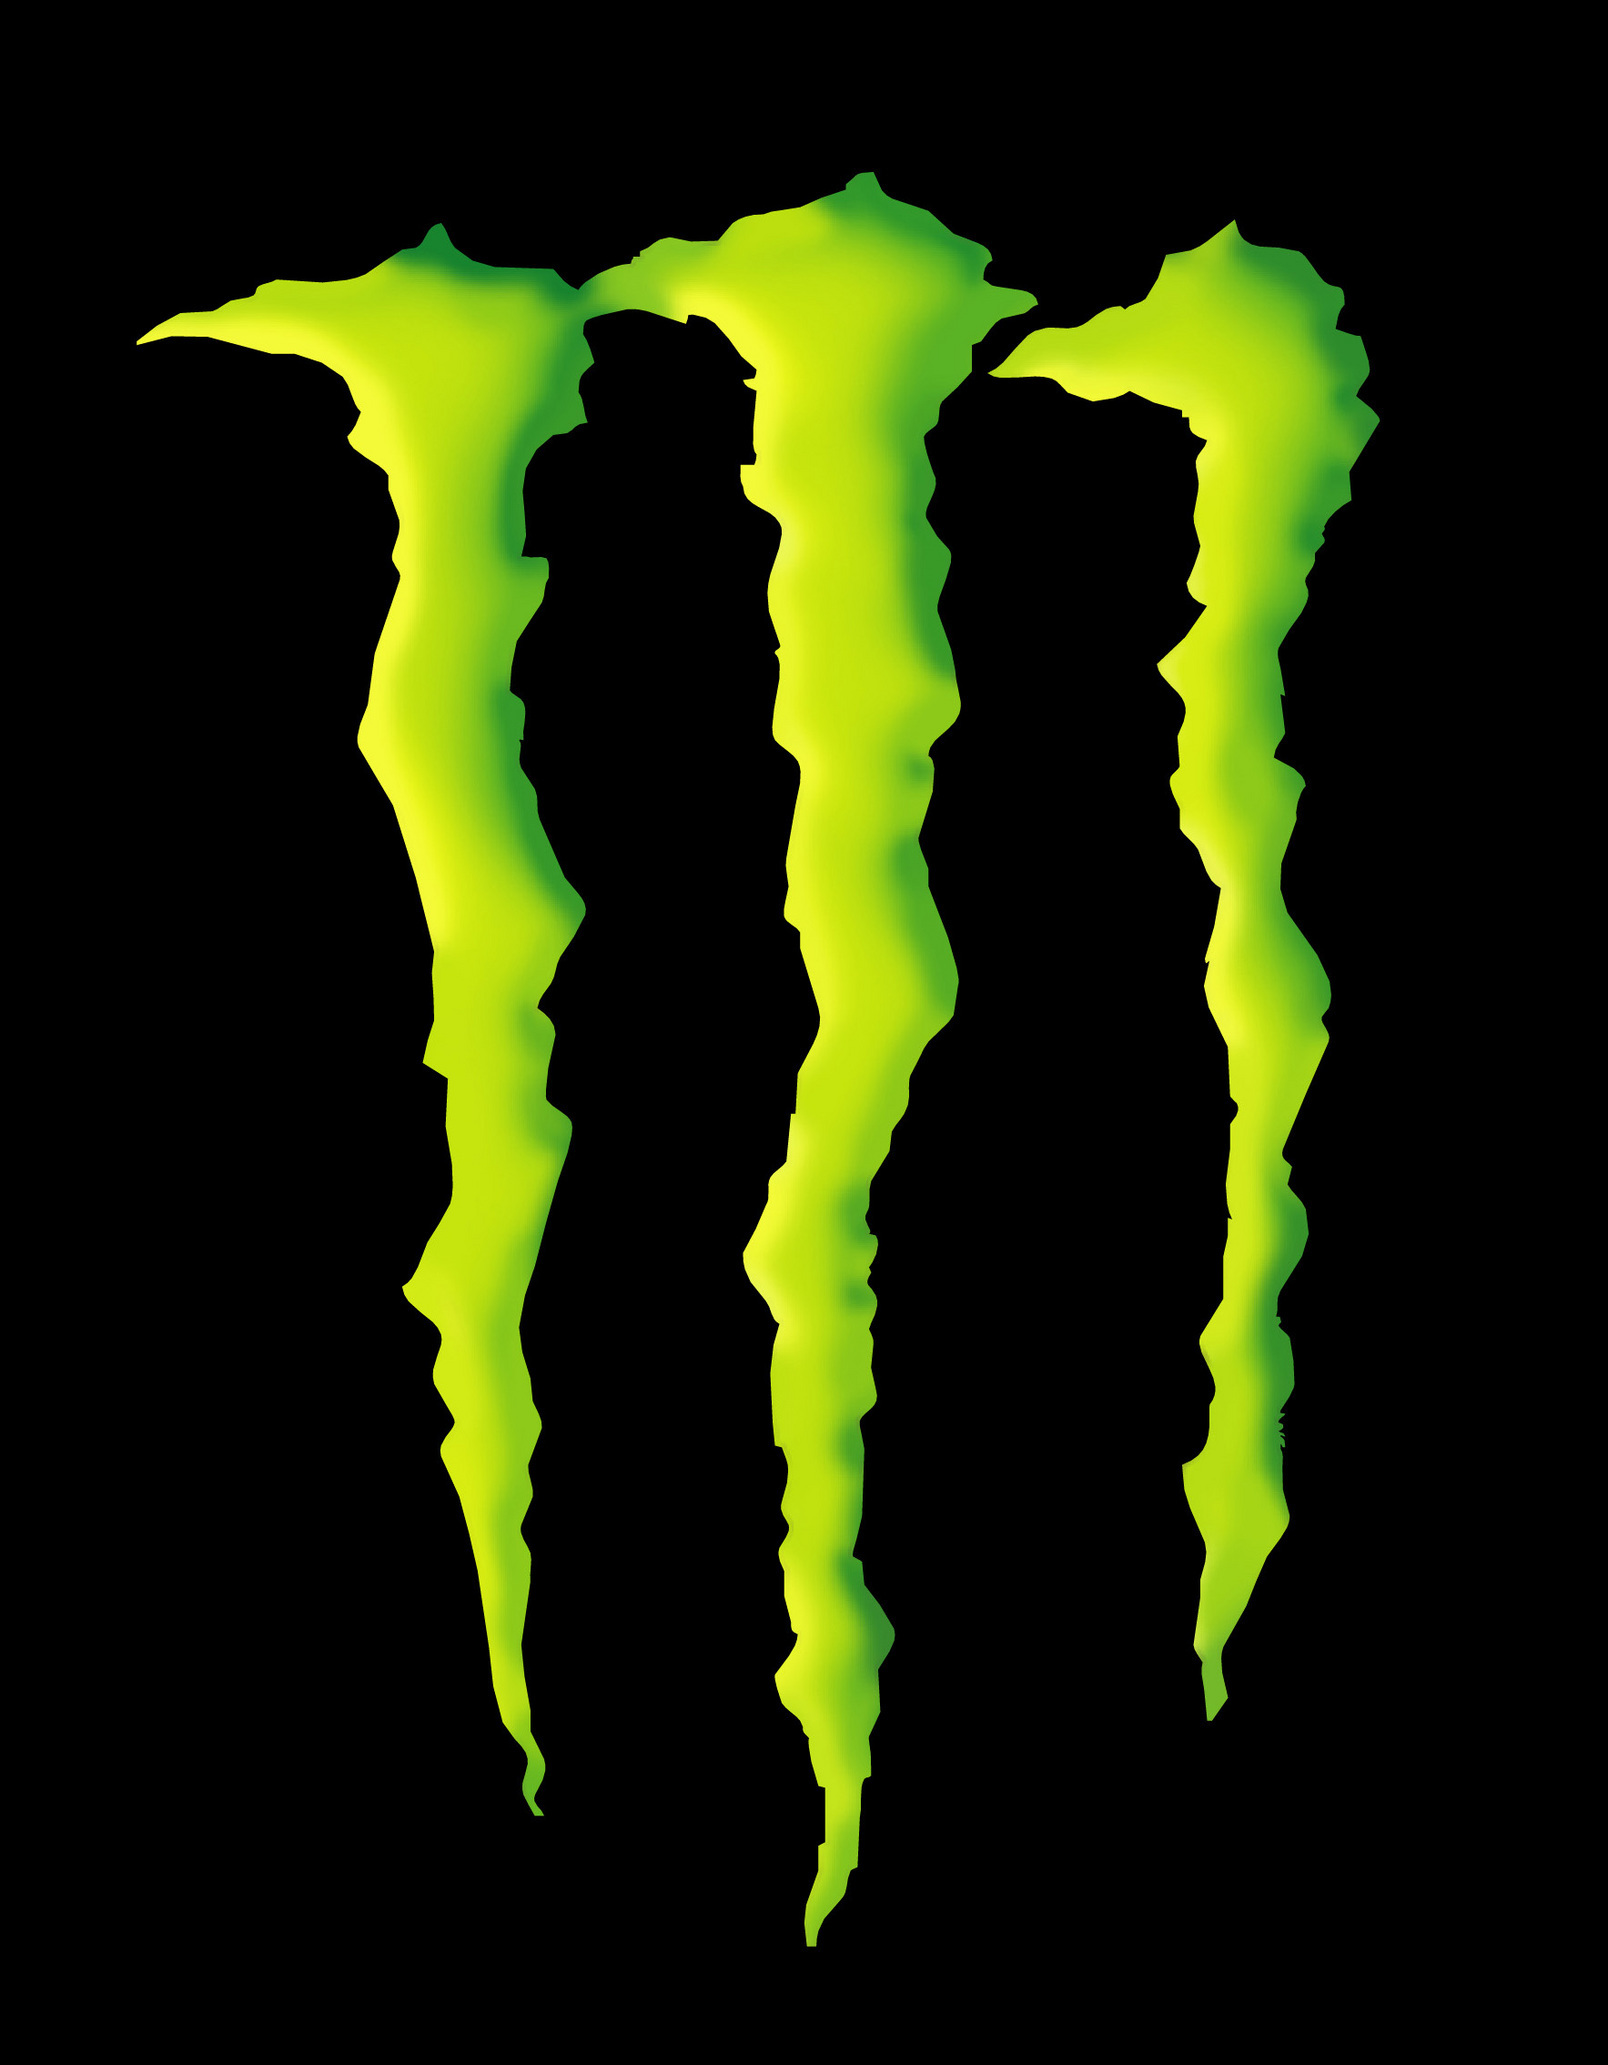 Monster Energy Wallpaper on Monster Energy Hd Wallpaper   Wild Animal   Reptiles   733646